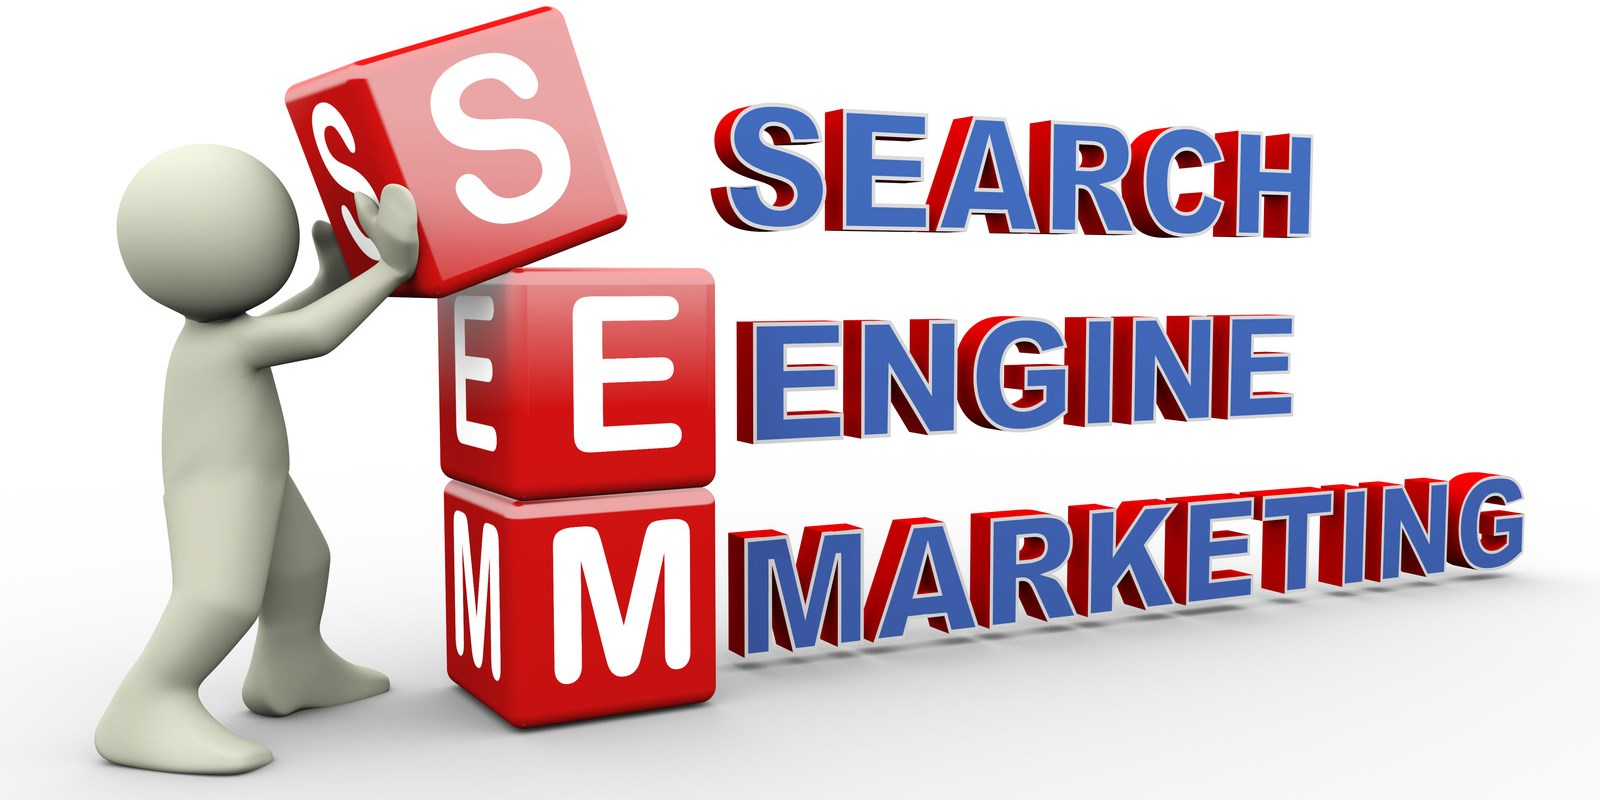 SEM là viết tắt của Search engine marketing